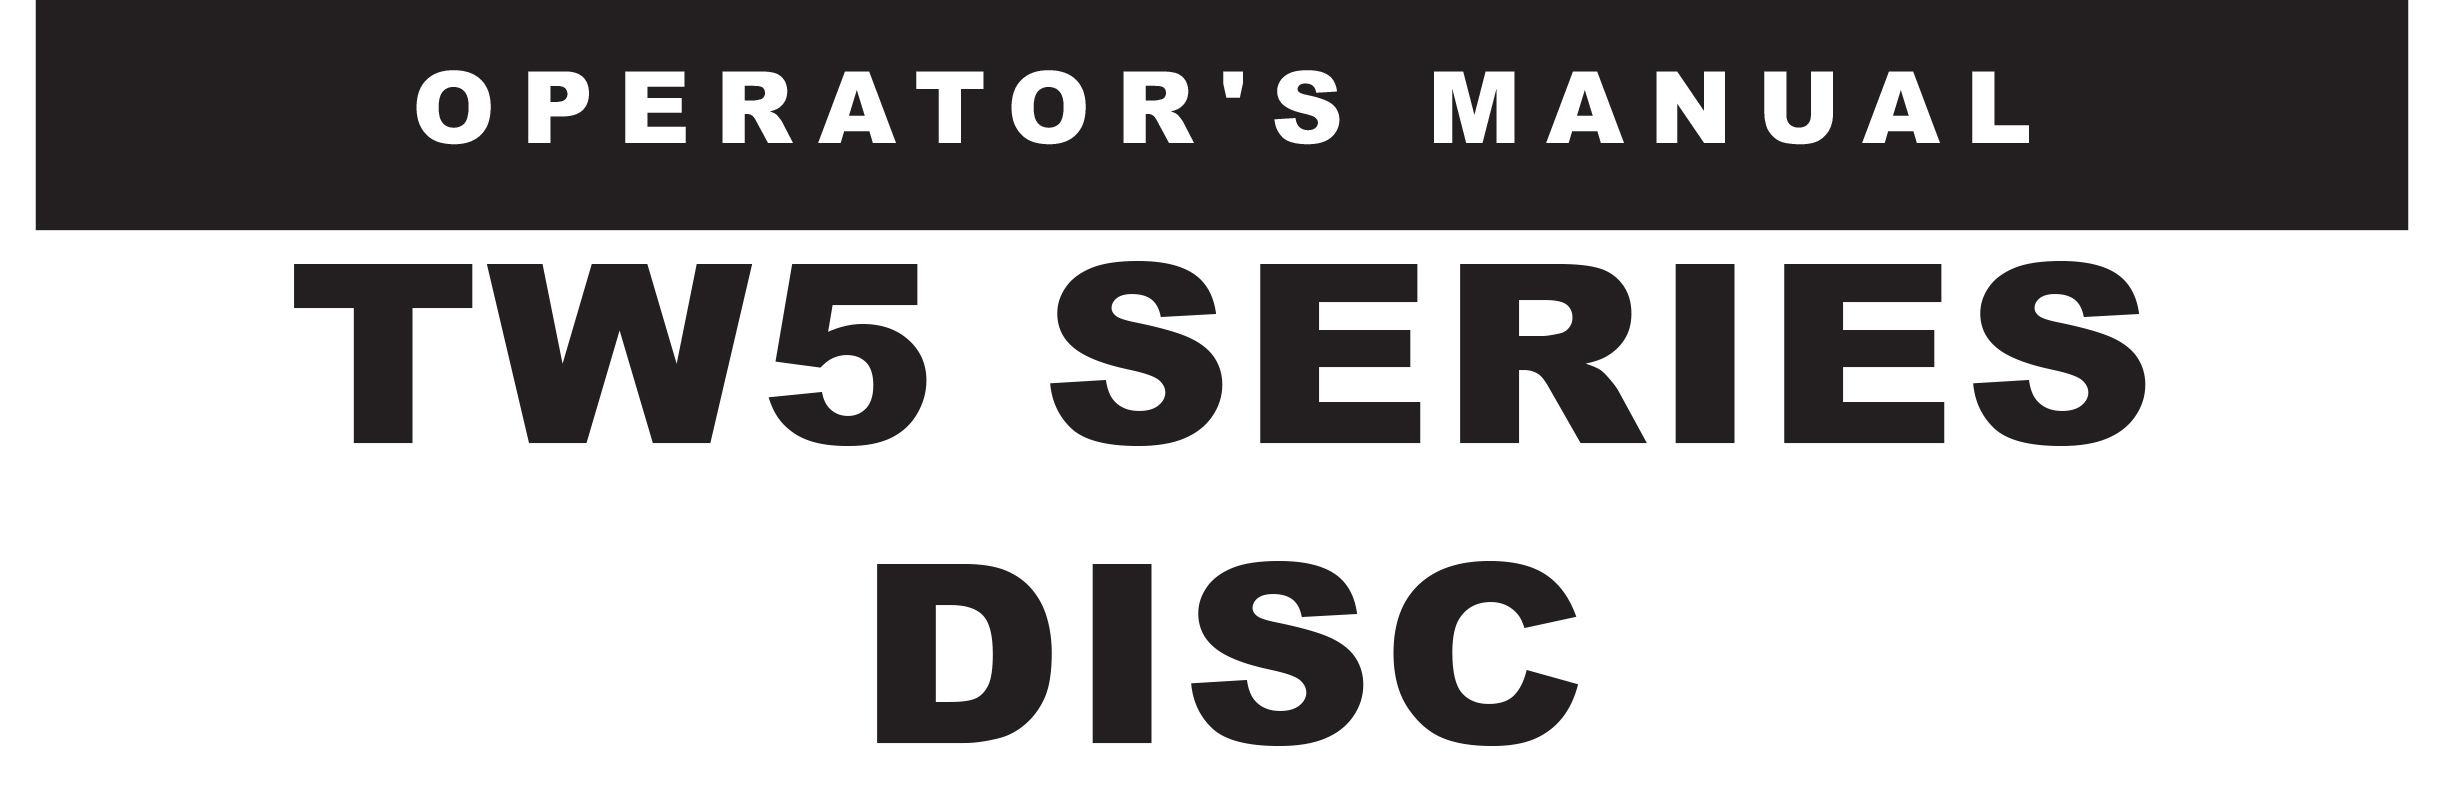 TW5 Series Owners Manual